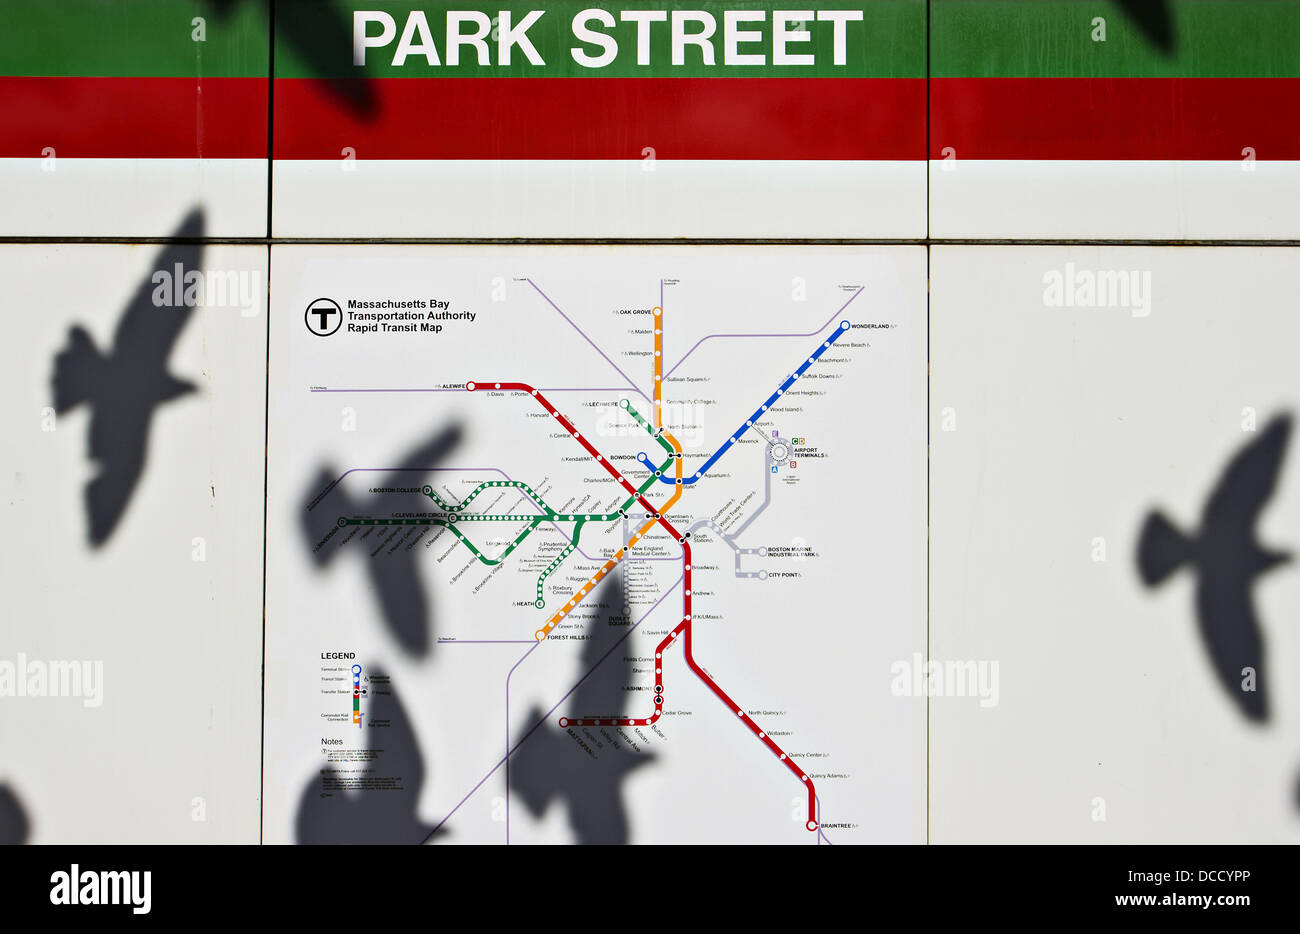 Boston Subway Map With Hotels.Massachusetts Boston Park Street Subway Map Shadow Of Pigeons